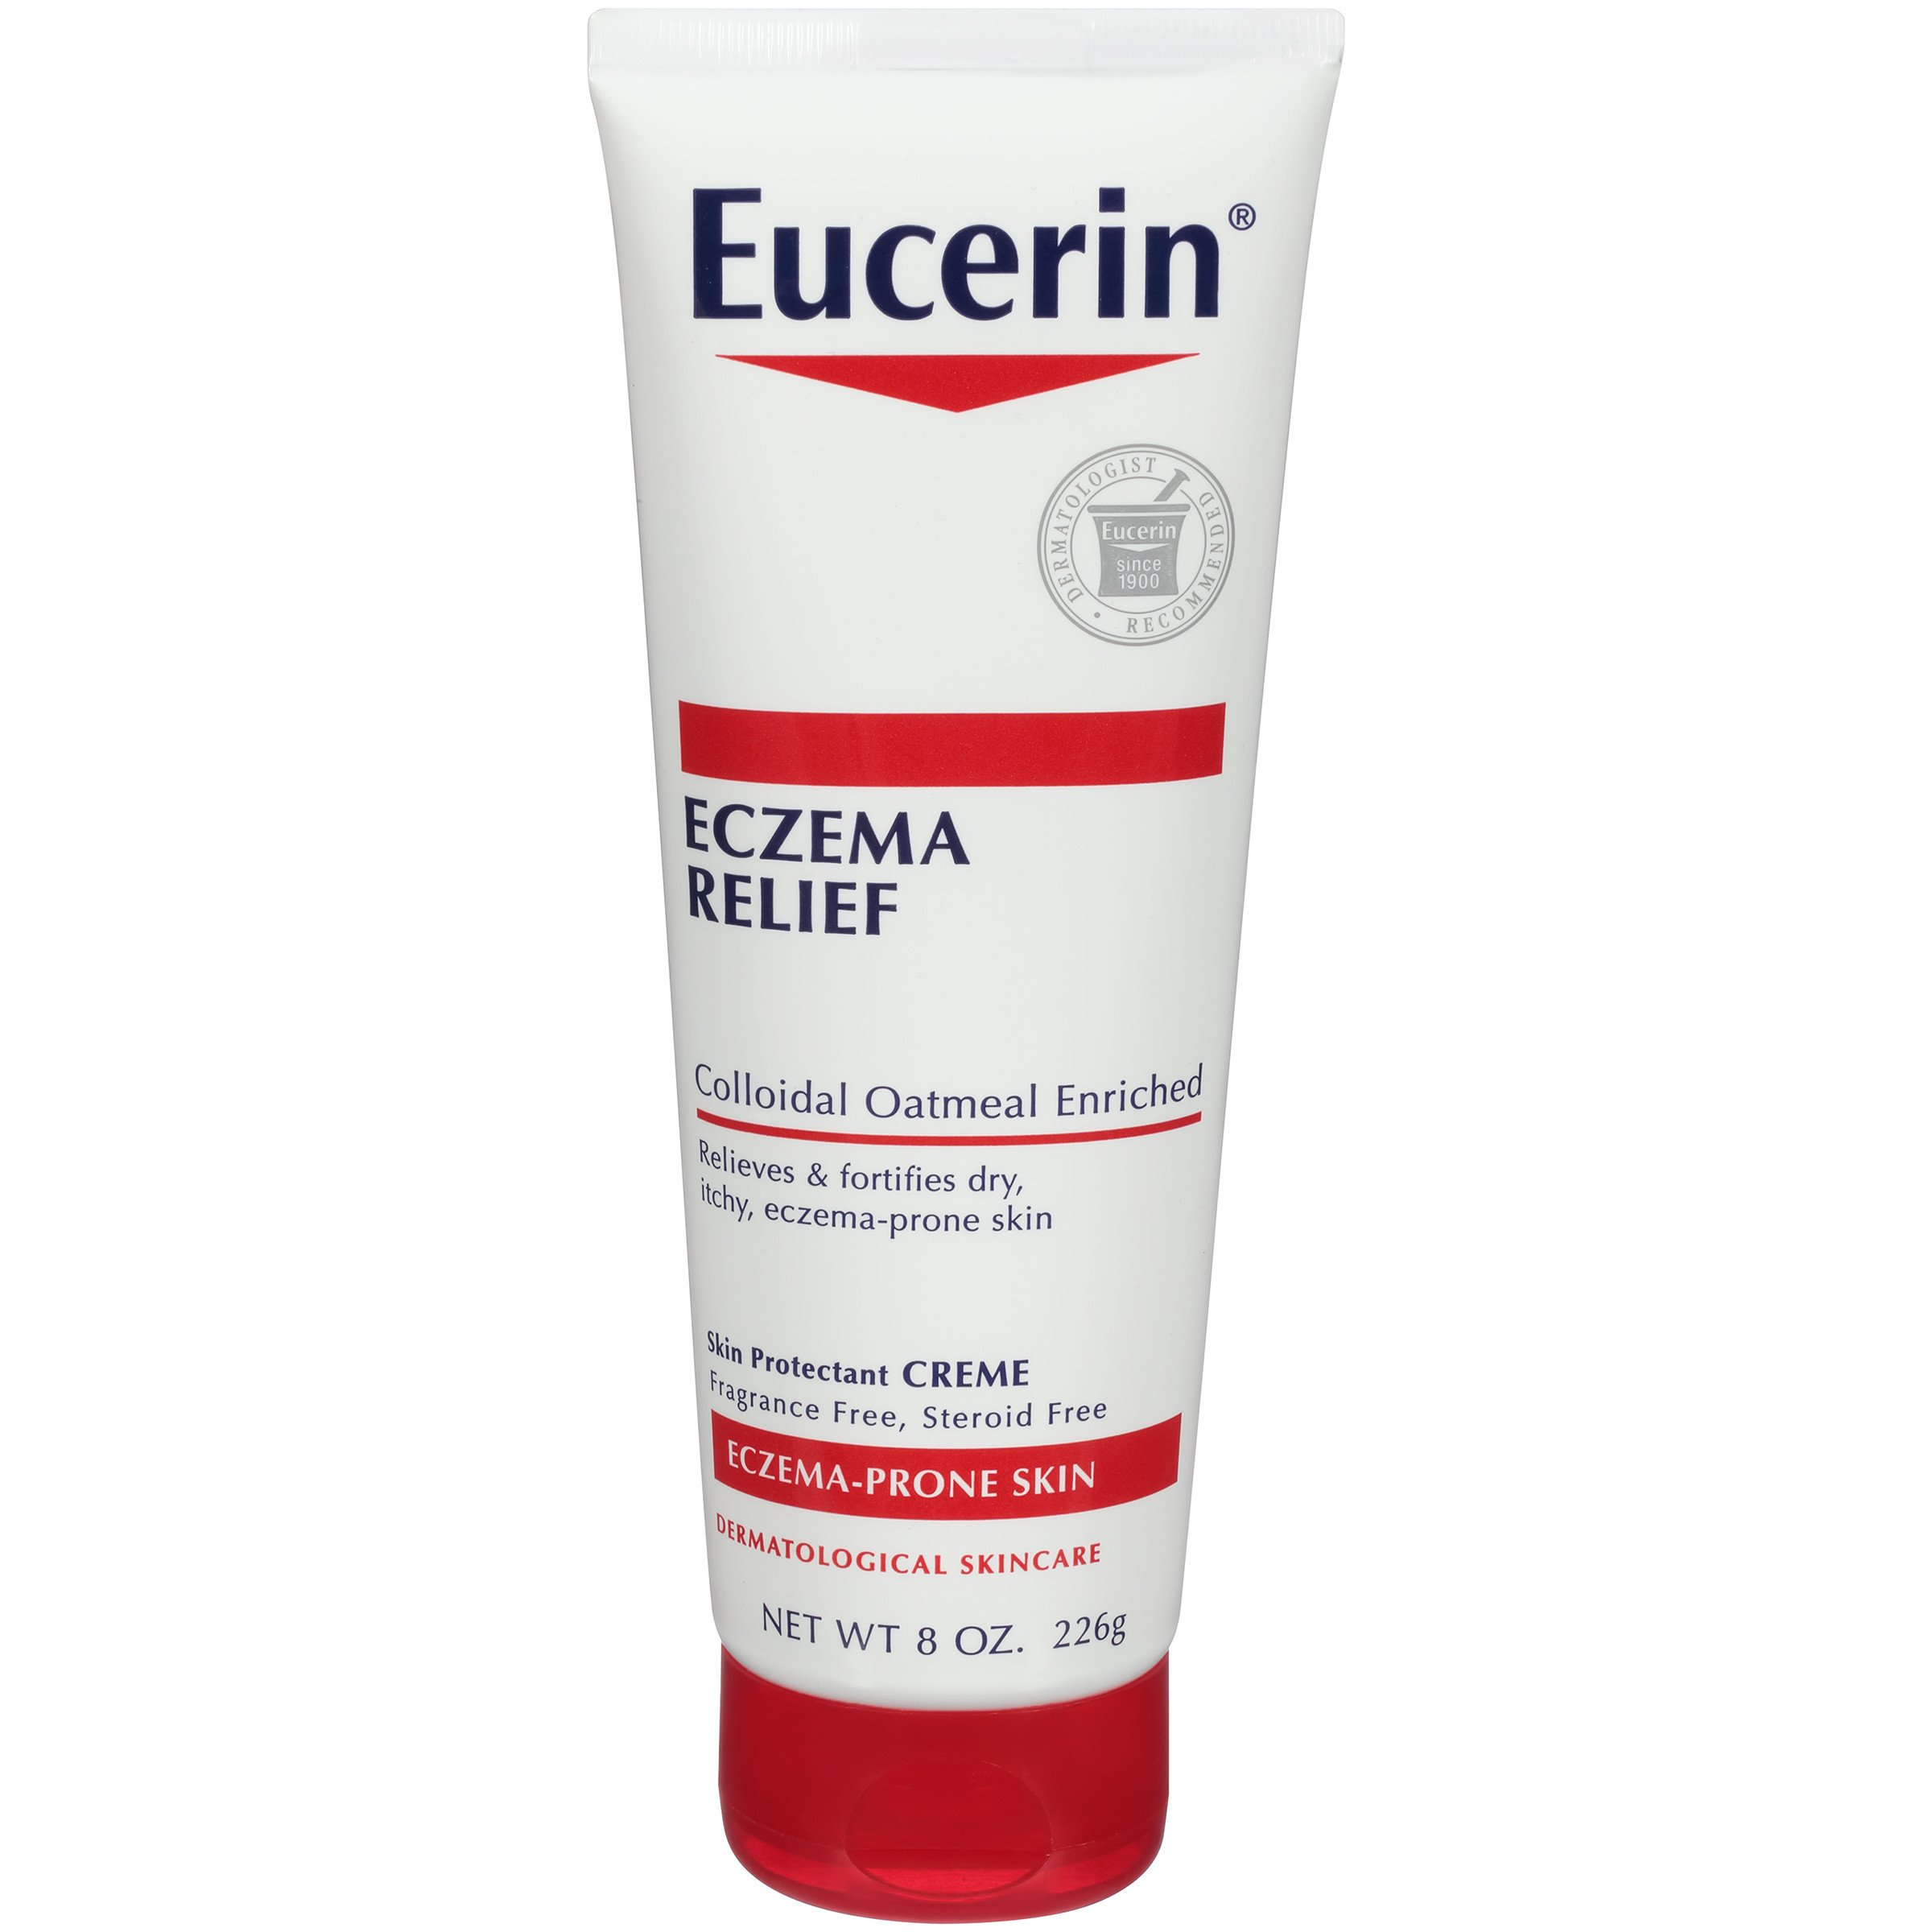 Eucerin Eczema Relief Body Creme 8.0 Ounce